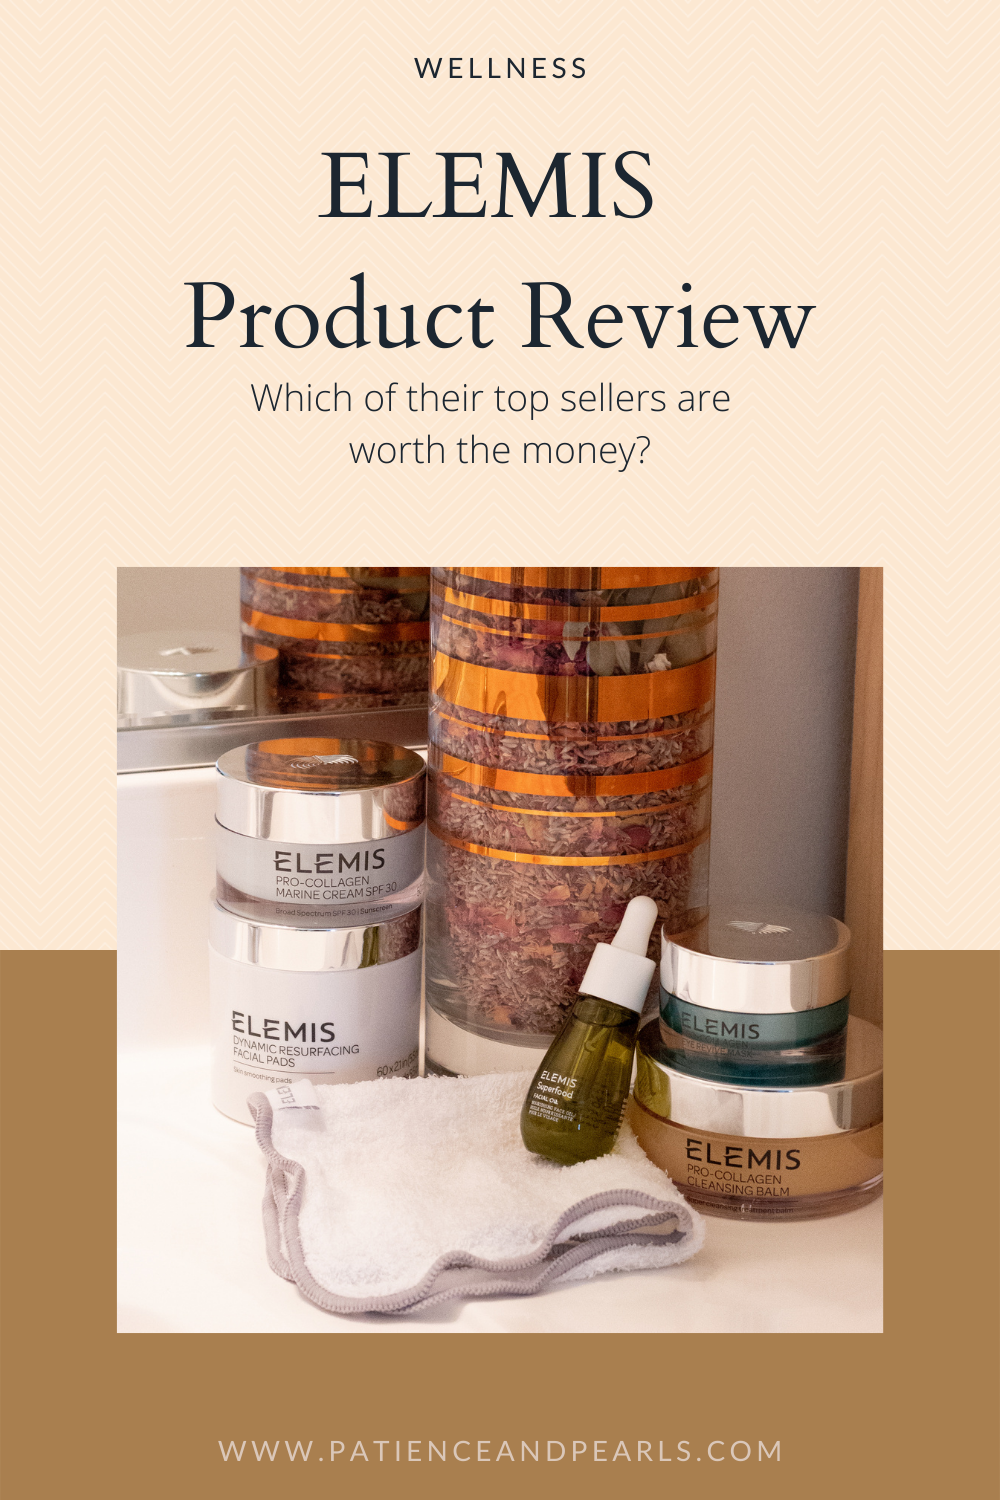 ELEMIS Skin Care Product Review - Patience & Pearls - Pinterest